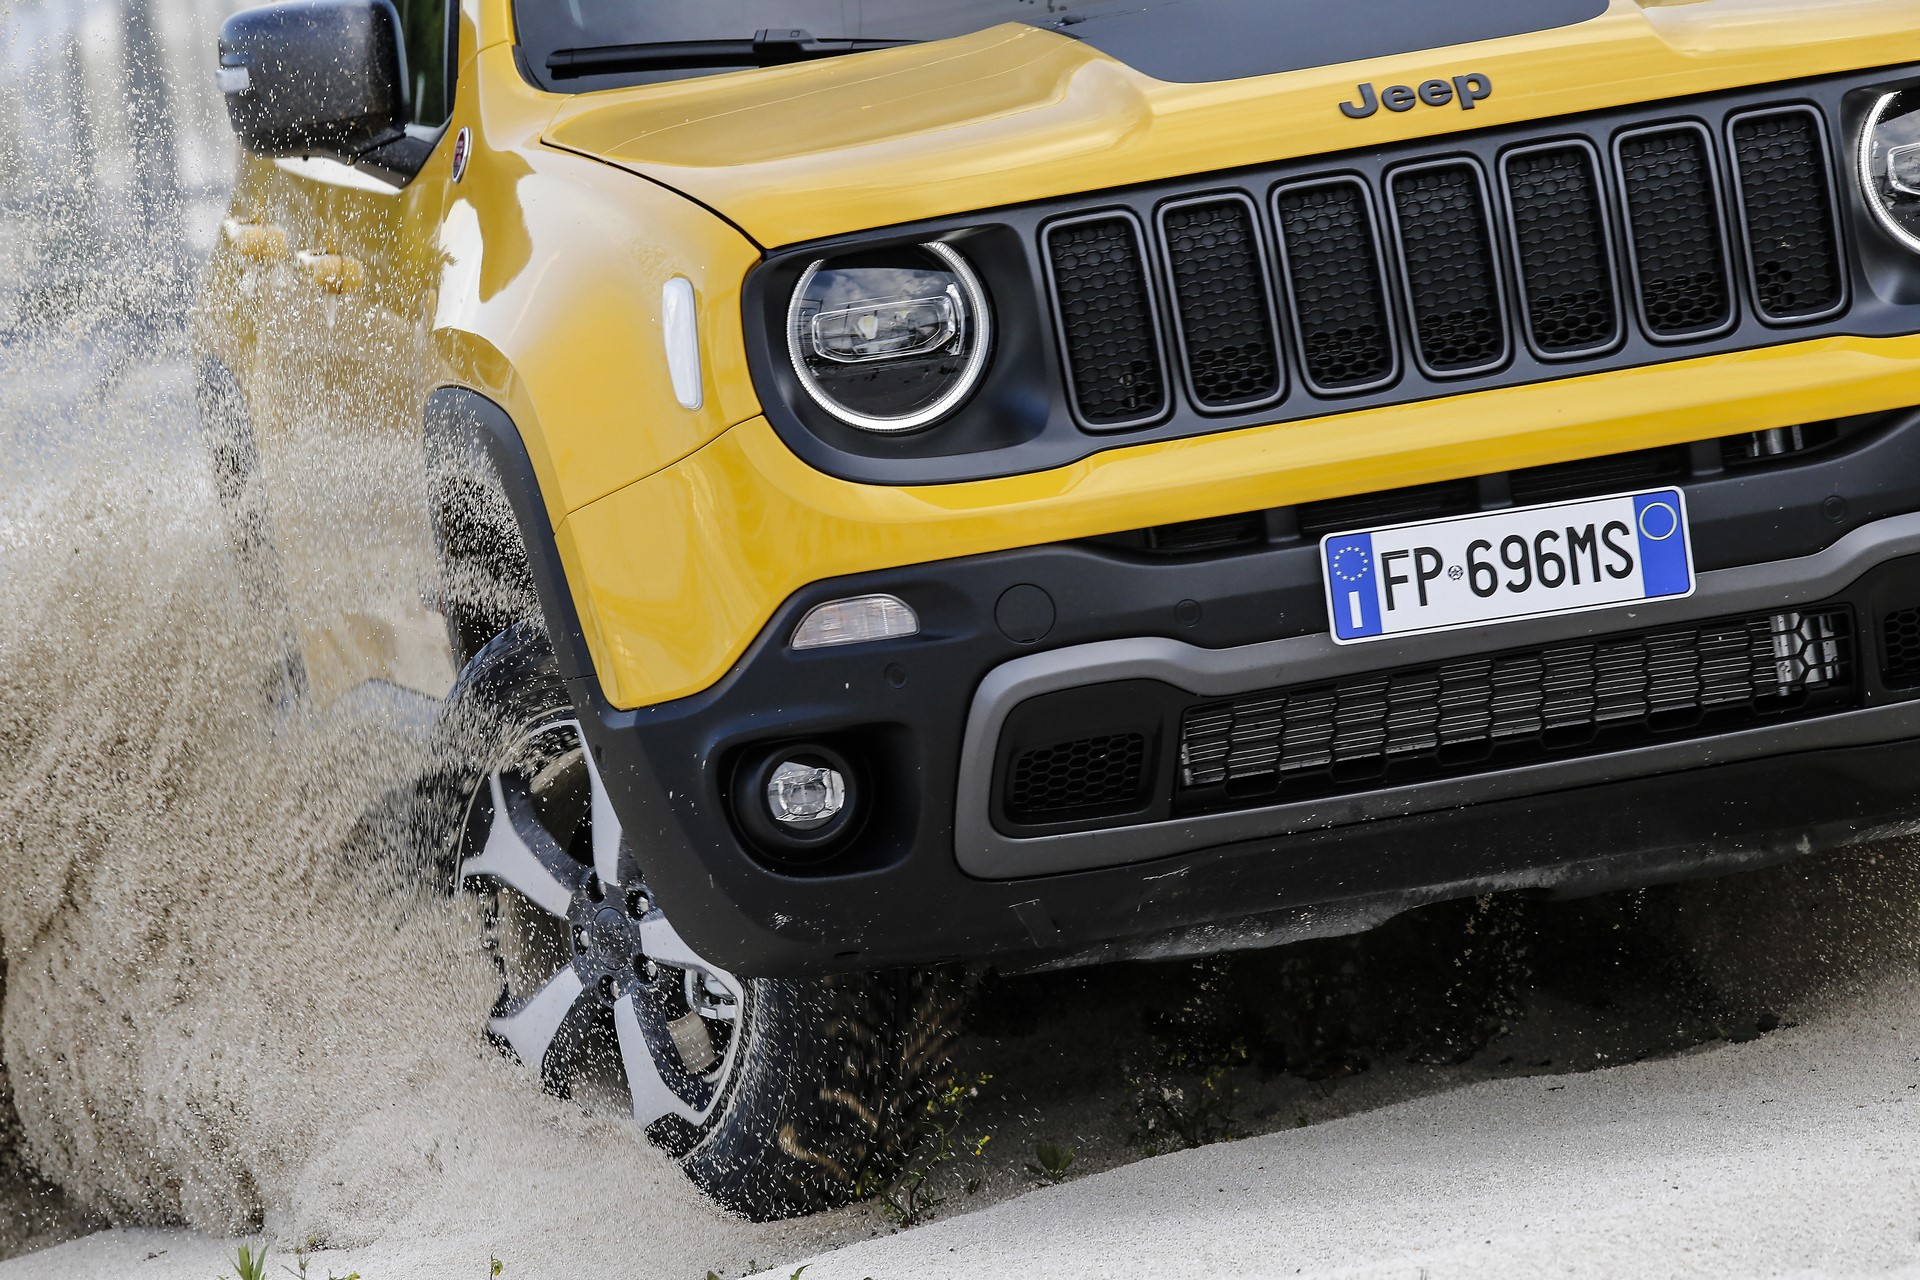 Jeep Renegade facelift 2019 (46)